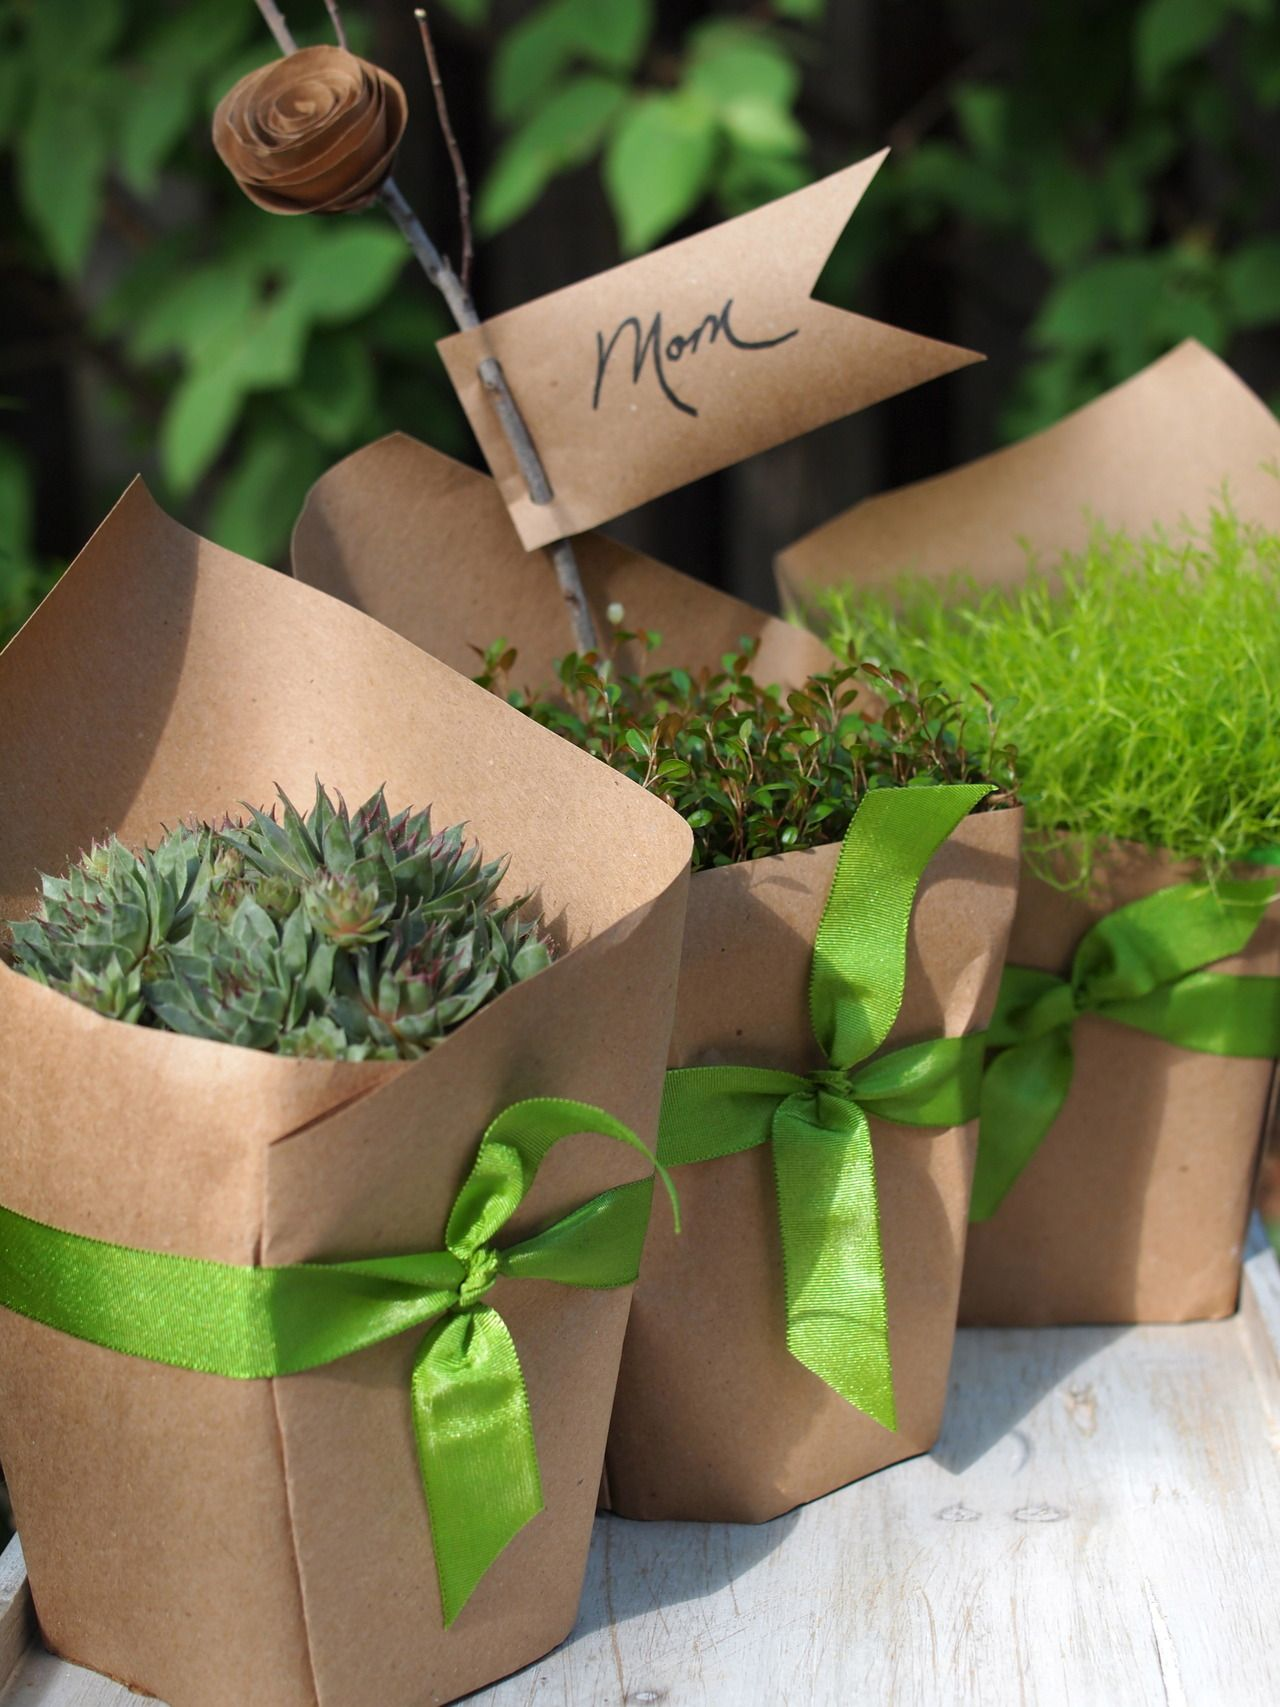 Wrap potted plants in craft paper for the perfect gift for